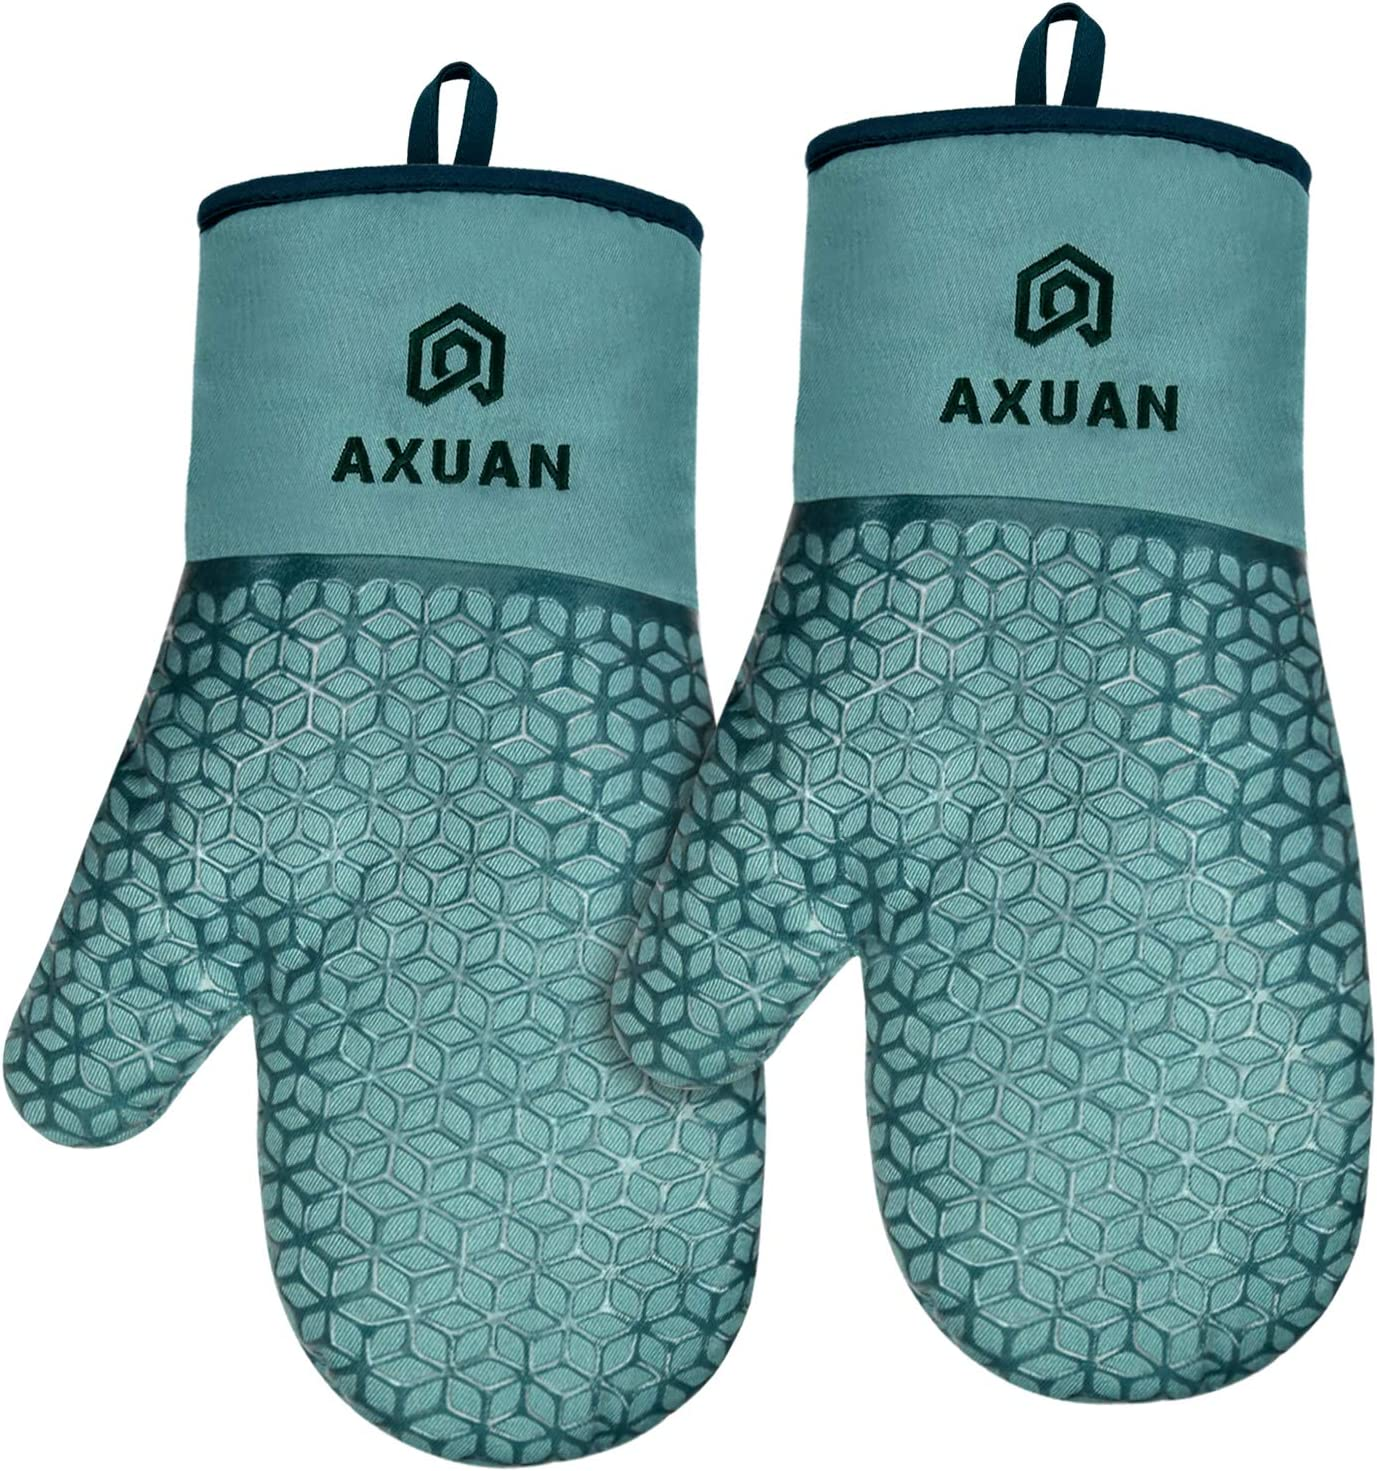 AXUAN Oven Mitts, Kitchen Oven Glove High Heat Resistant 500 Degree with Food Grade Non-Slip Silicone Surface for Cooking Baking BBQ (Blue)